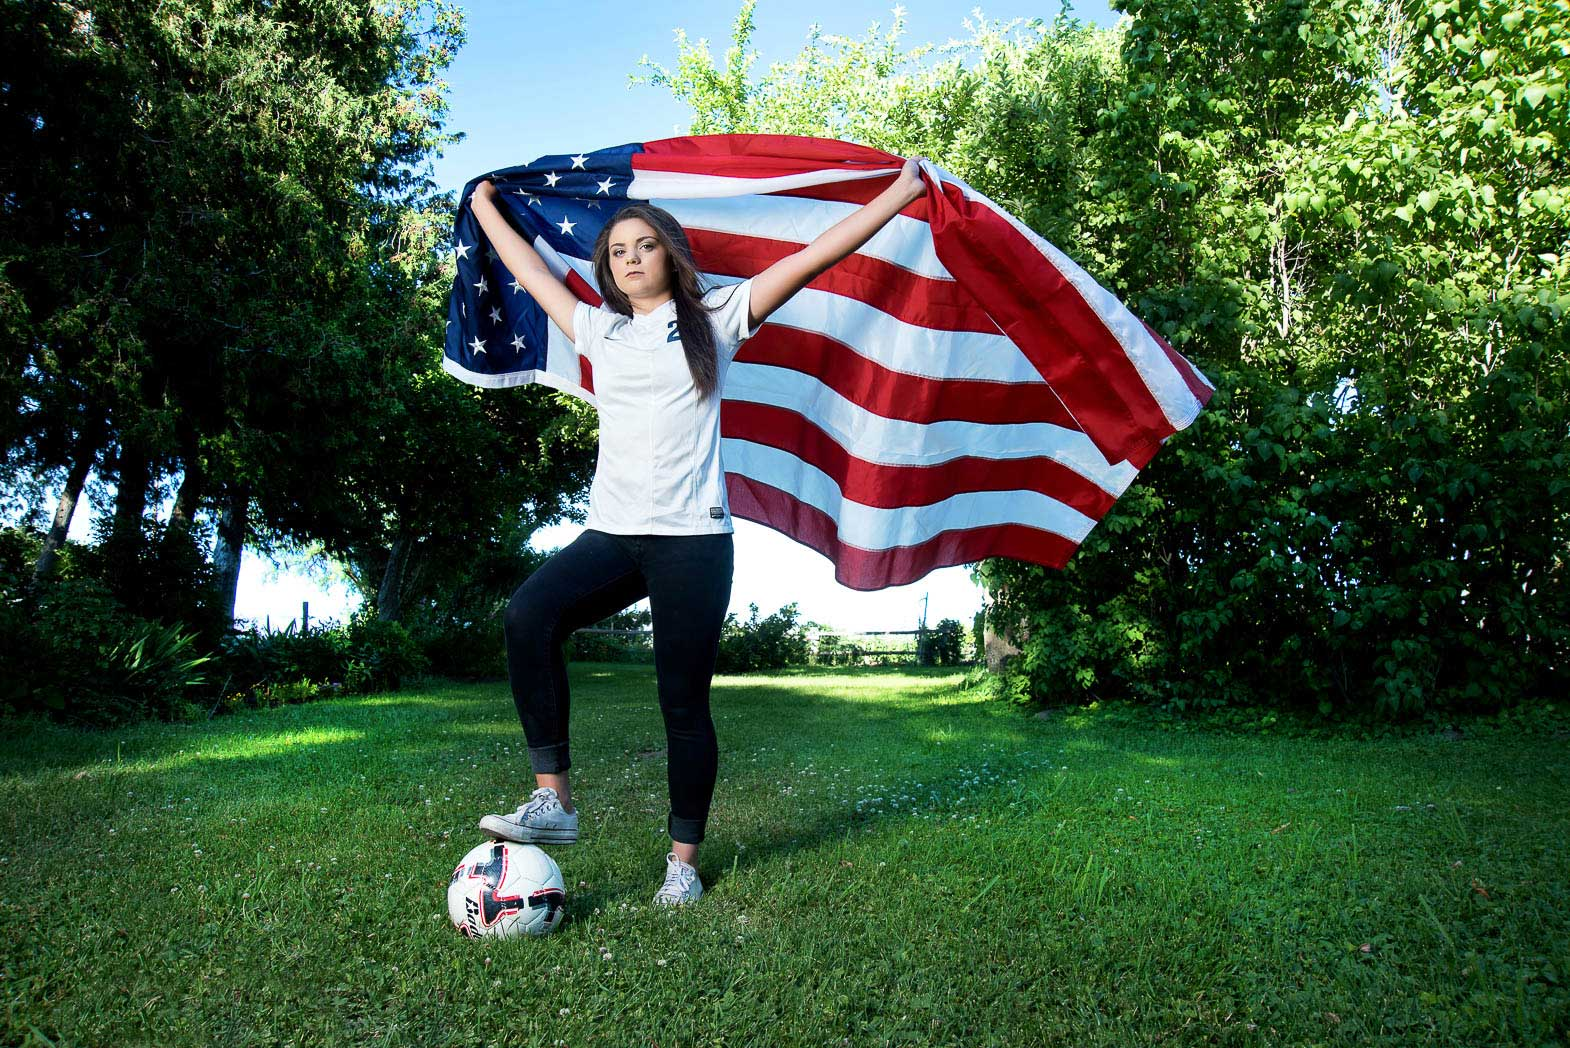 senior picture of girl standing with foot on soccer ball and holding american flag billowing behind her